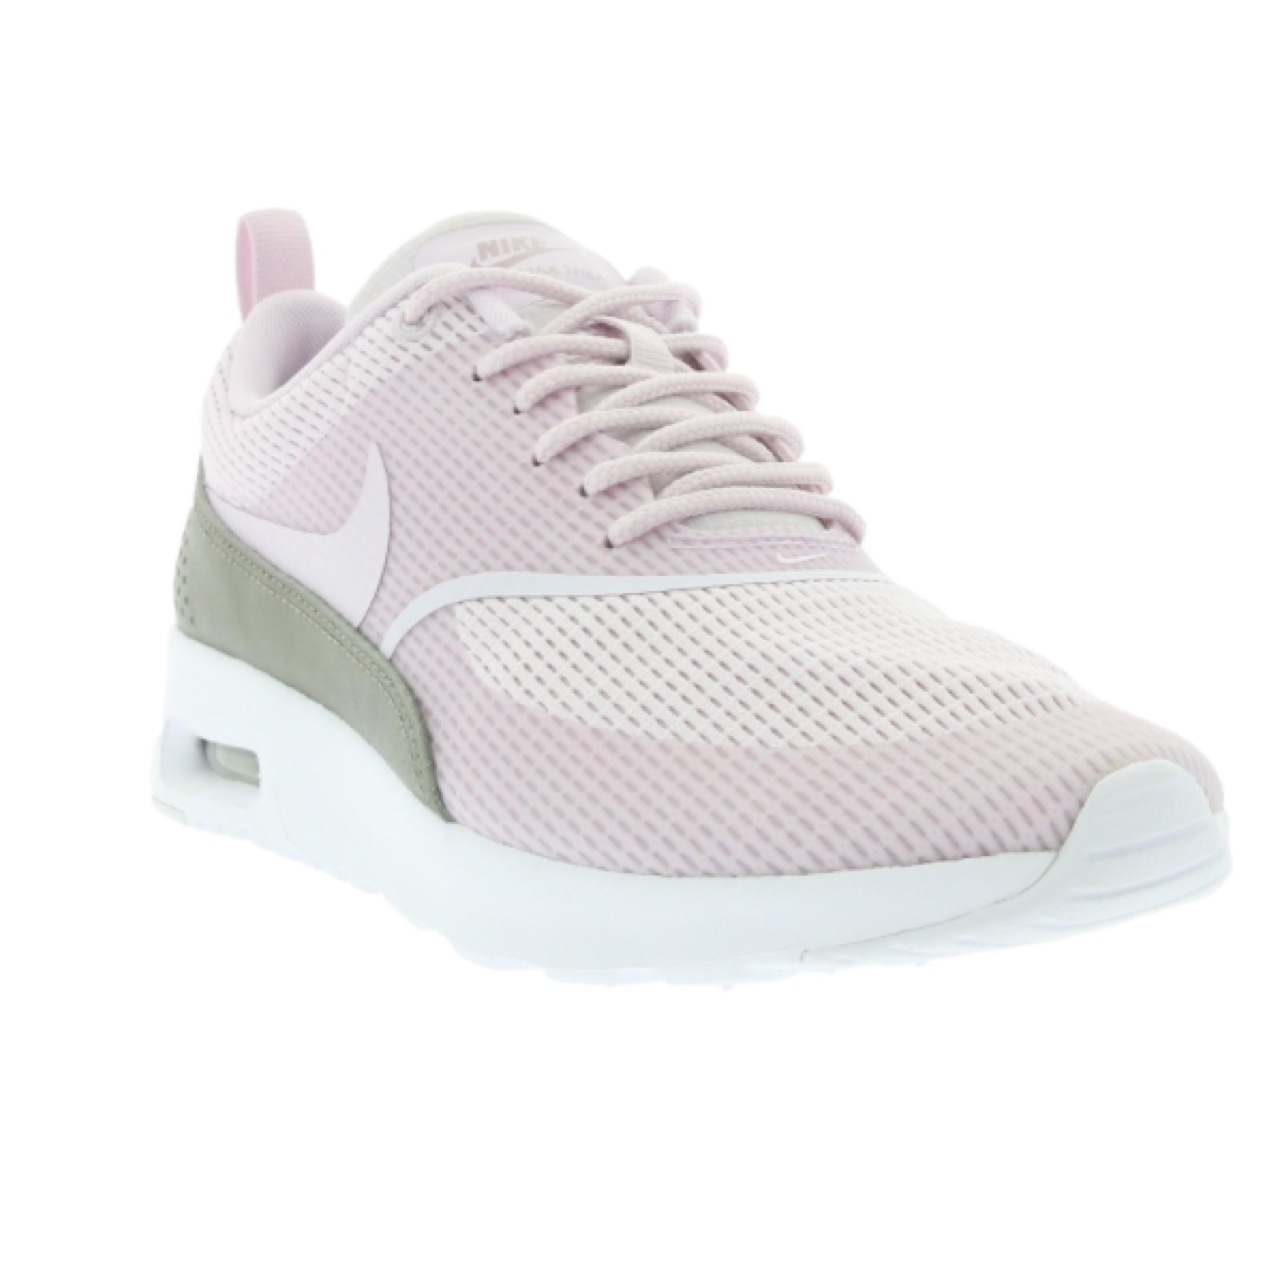 NIKE Air Max Thea baby pink with silver